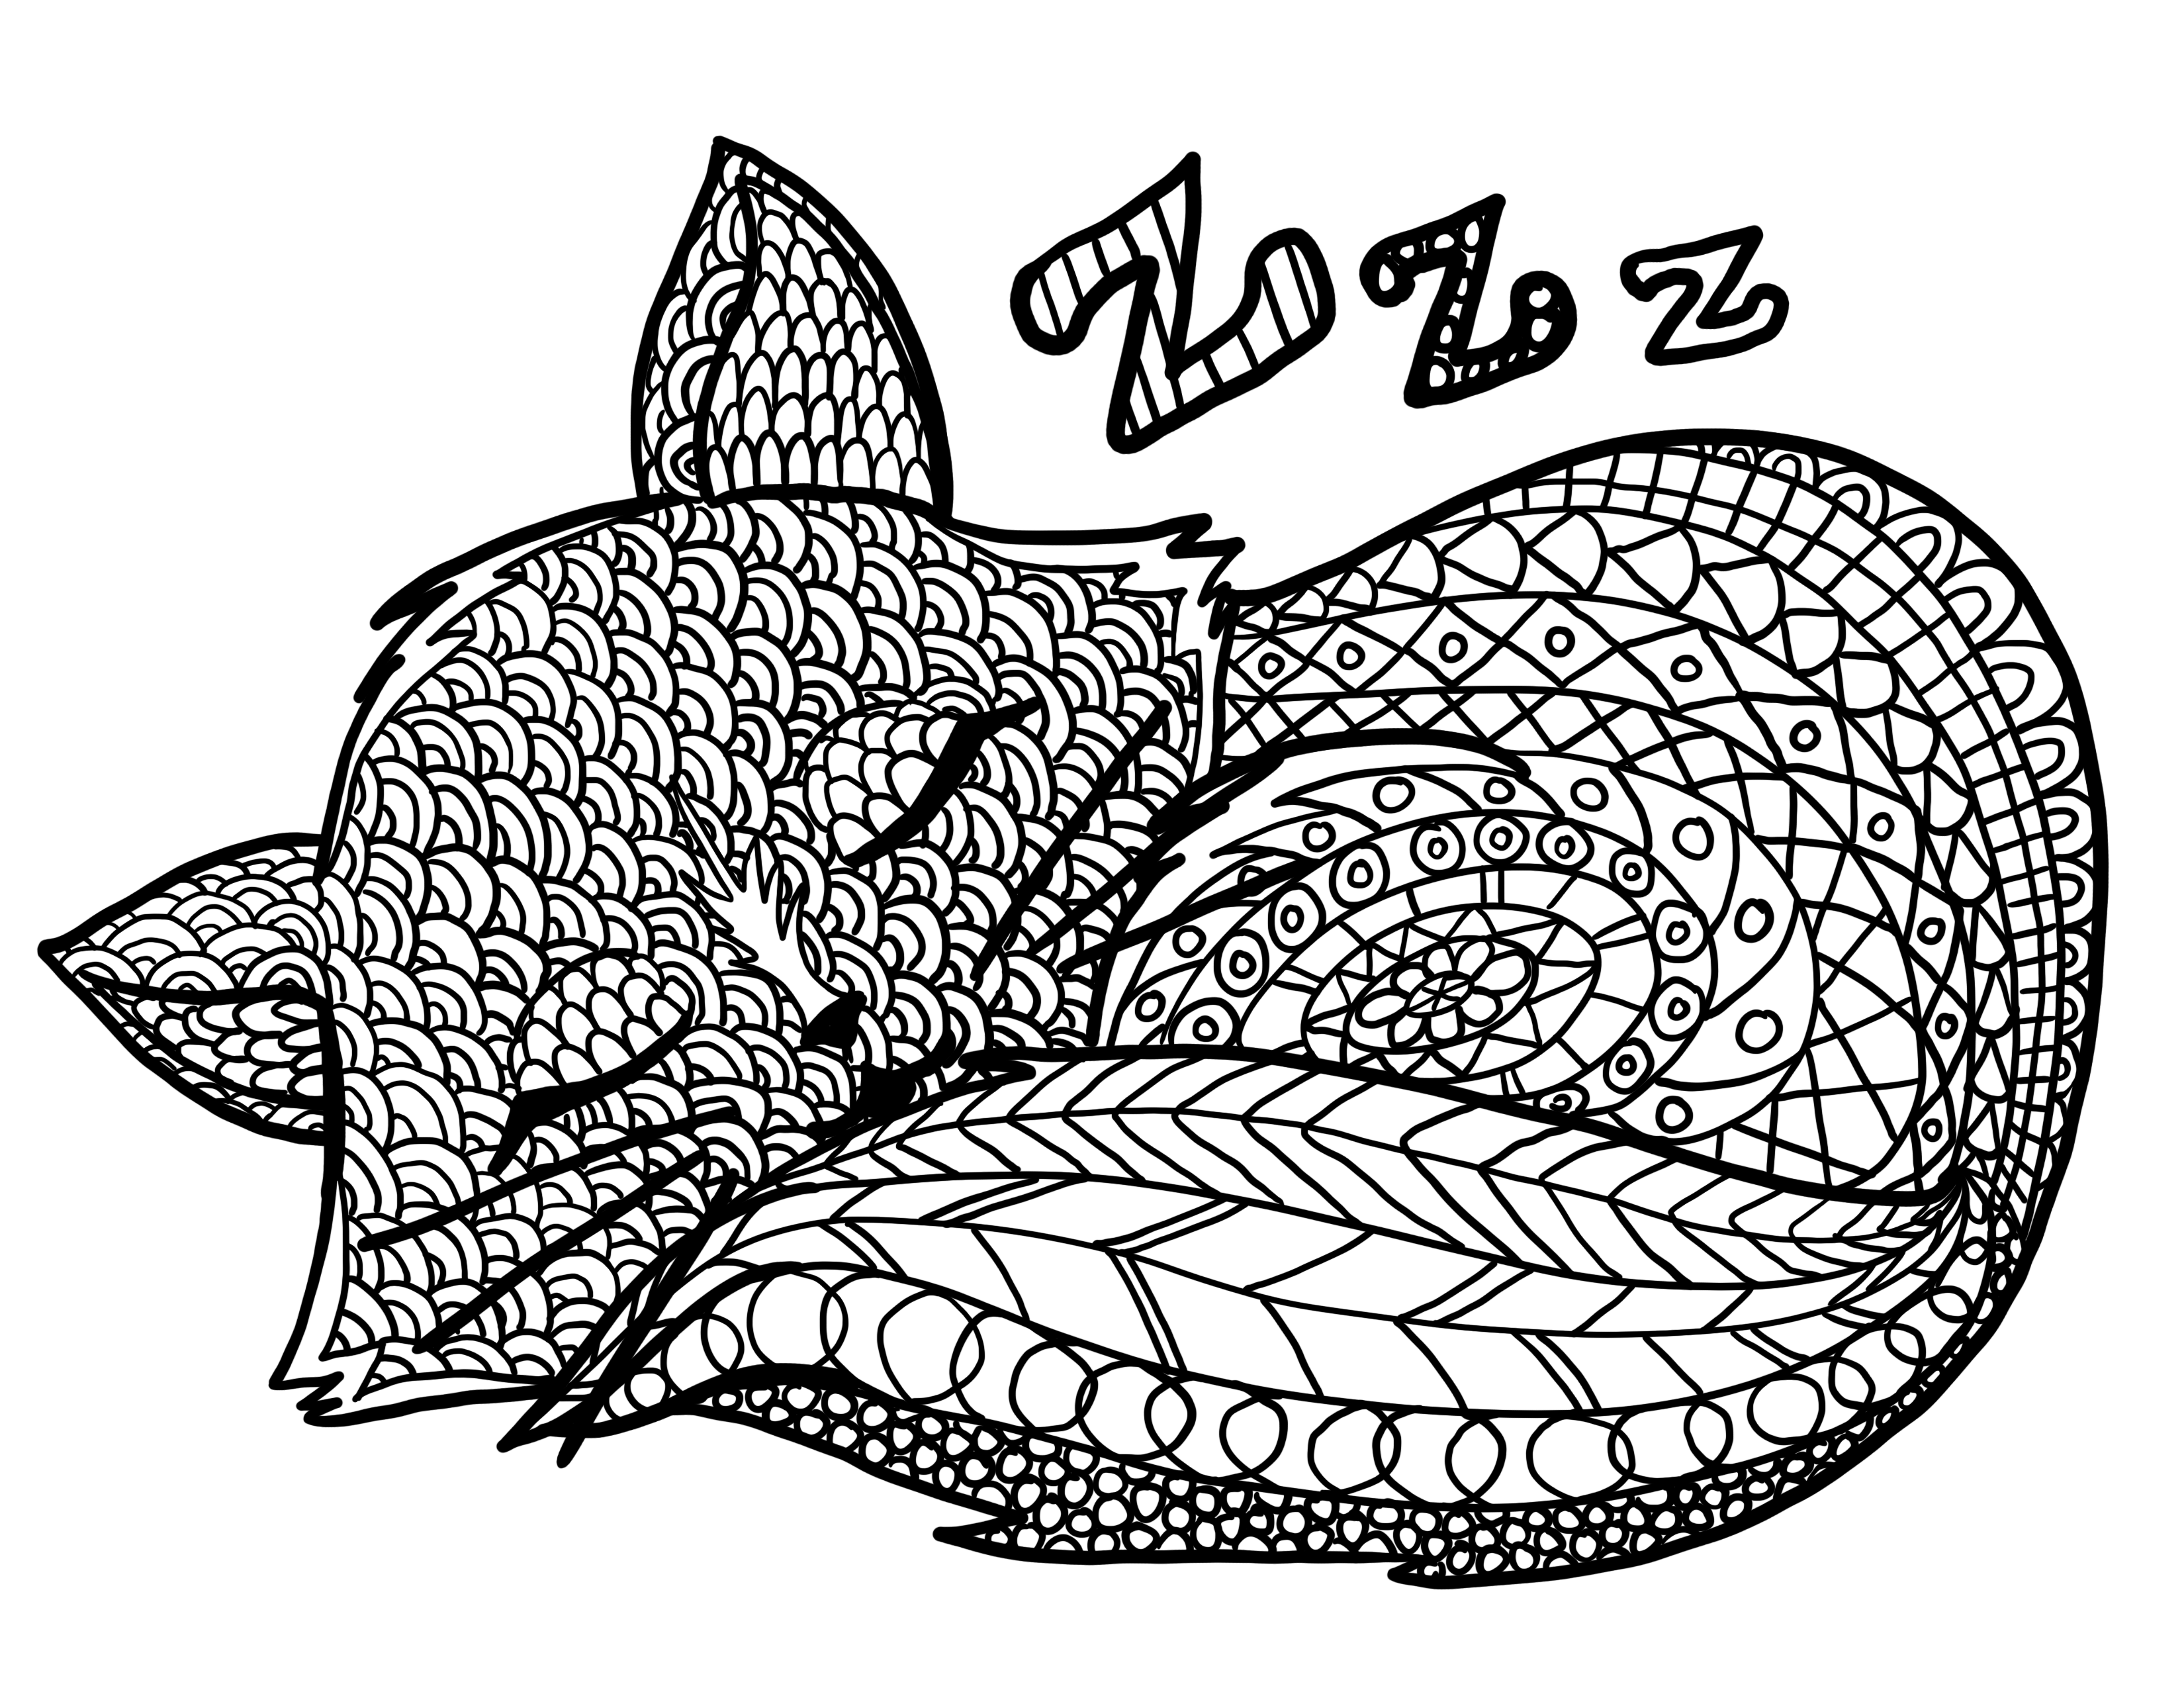 relaxation animal coloring pages excelent relaxing coloring pages for kids photo ideas coloring animal relaxation pages